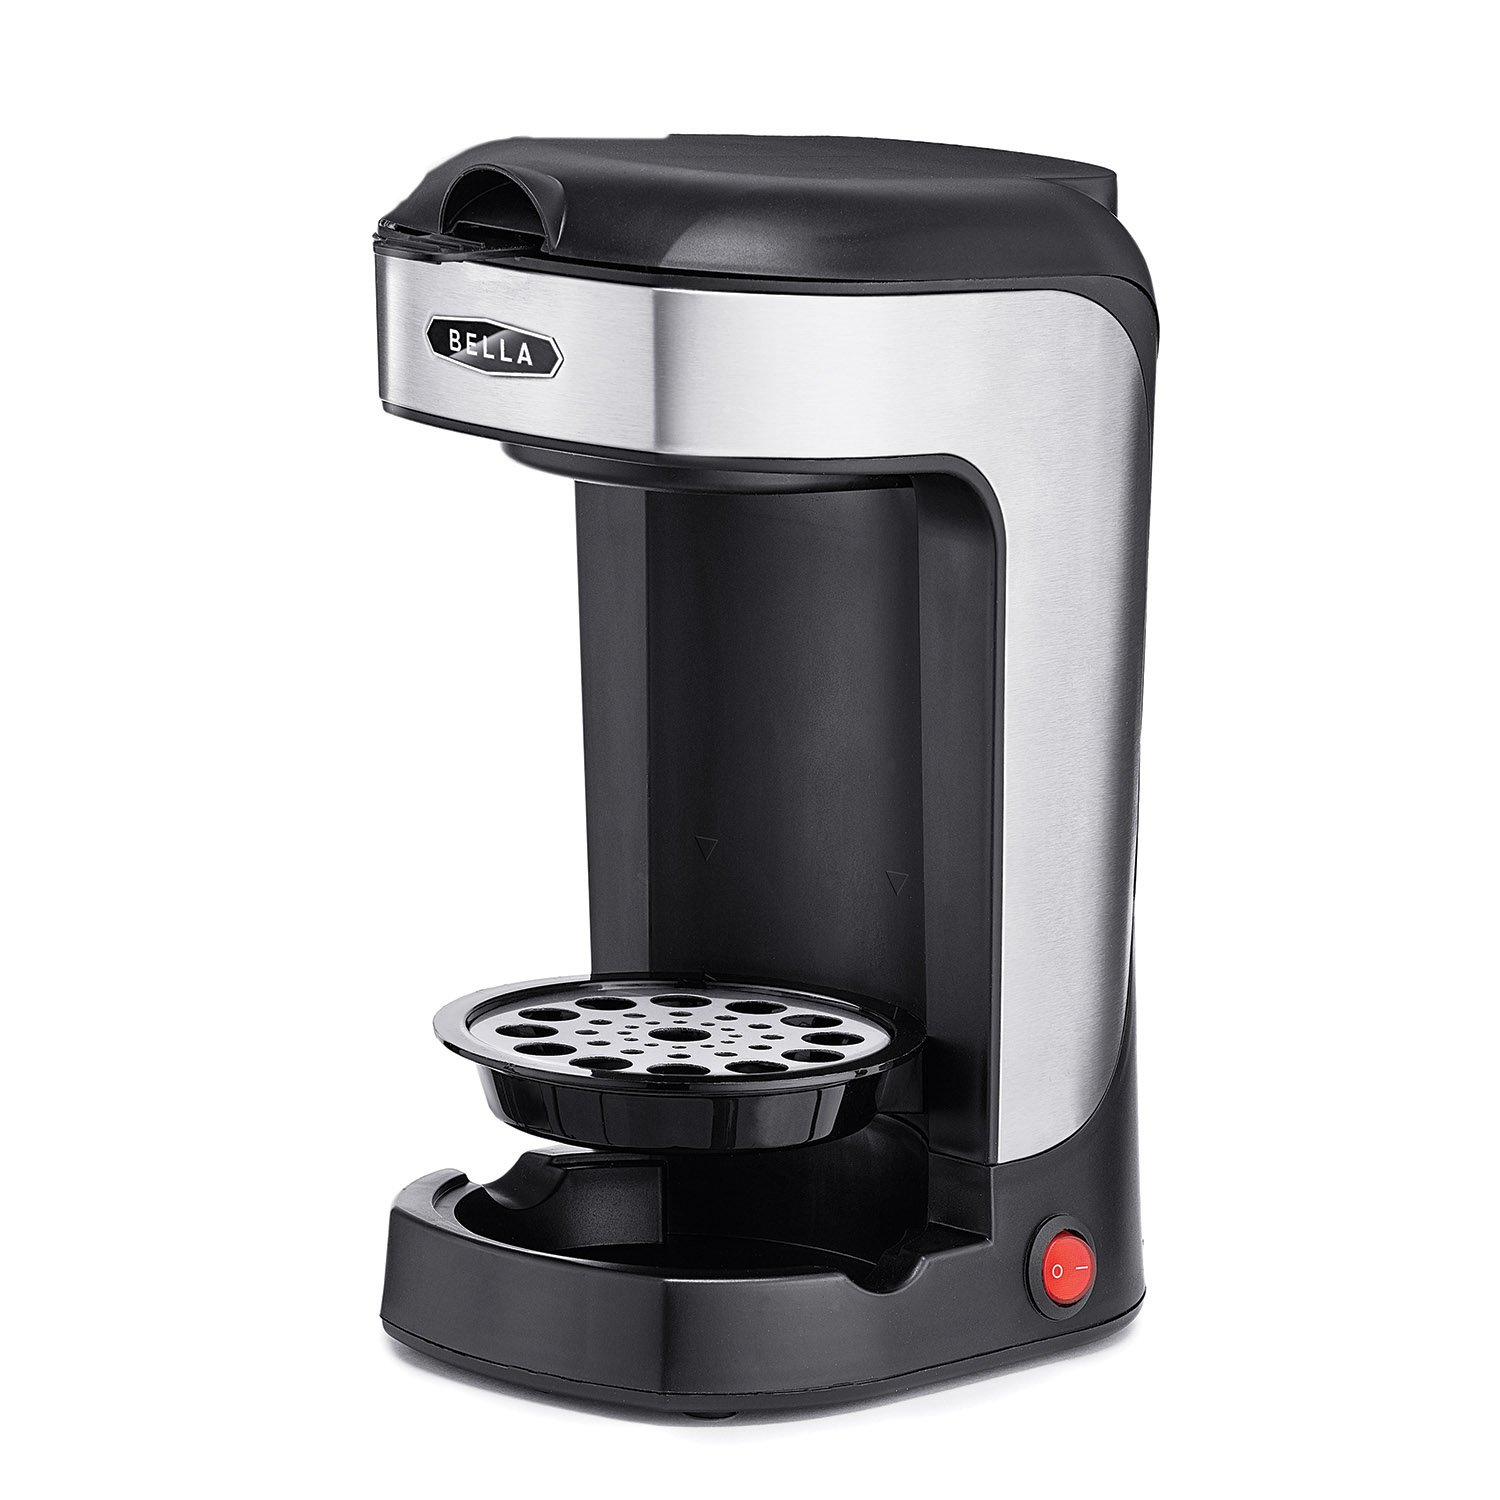 BELLA 14436 One Scoop One Cup Coffee Maker, Black and Stainless Steel by BELLA